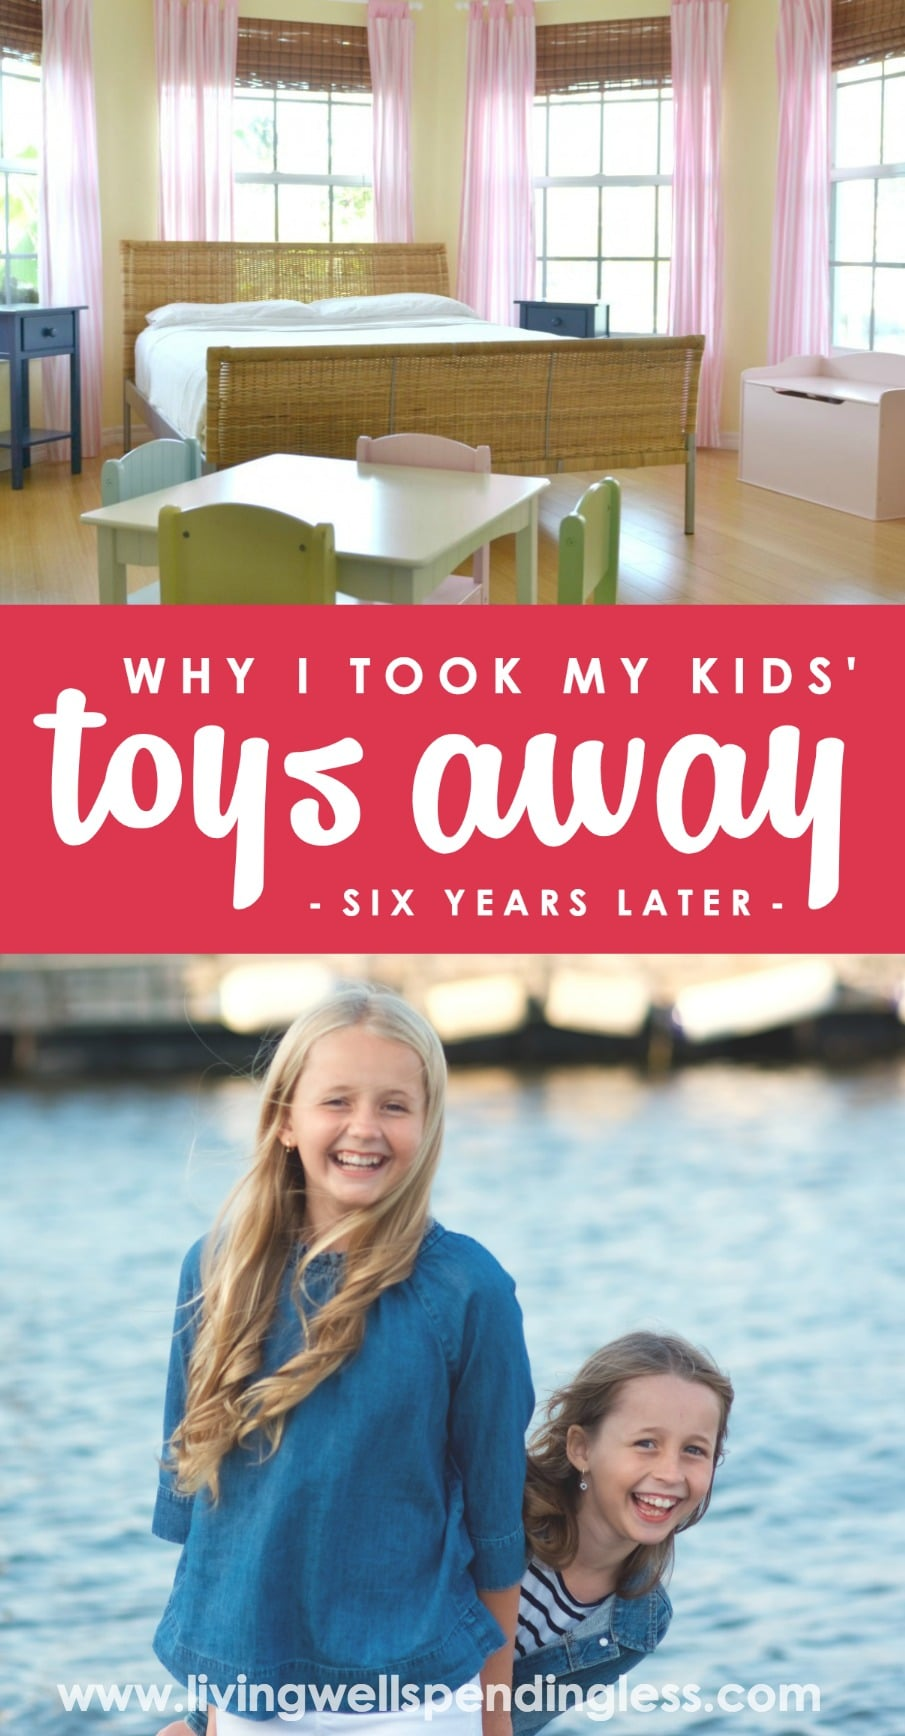 Ever wonder what happened to the kids whose mom ignited a firestorm when she took all their toys away?  Six years later, this follow-up post addresses all the questions brought up by that still very controversial post.   A must read!